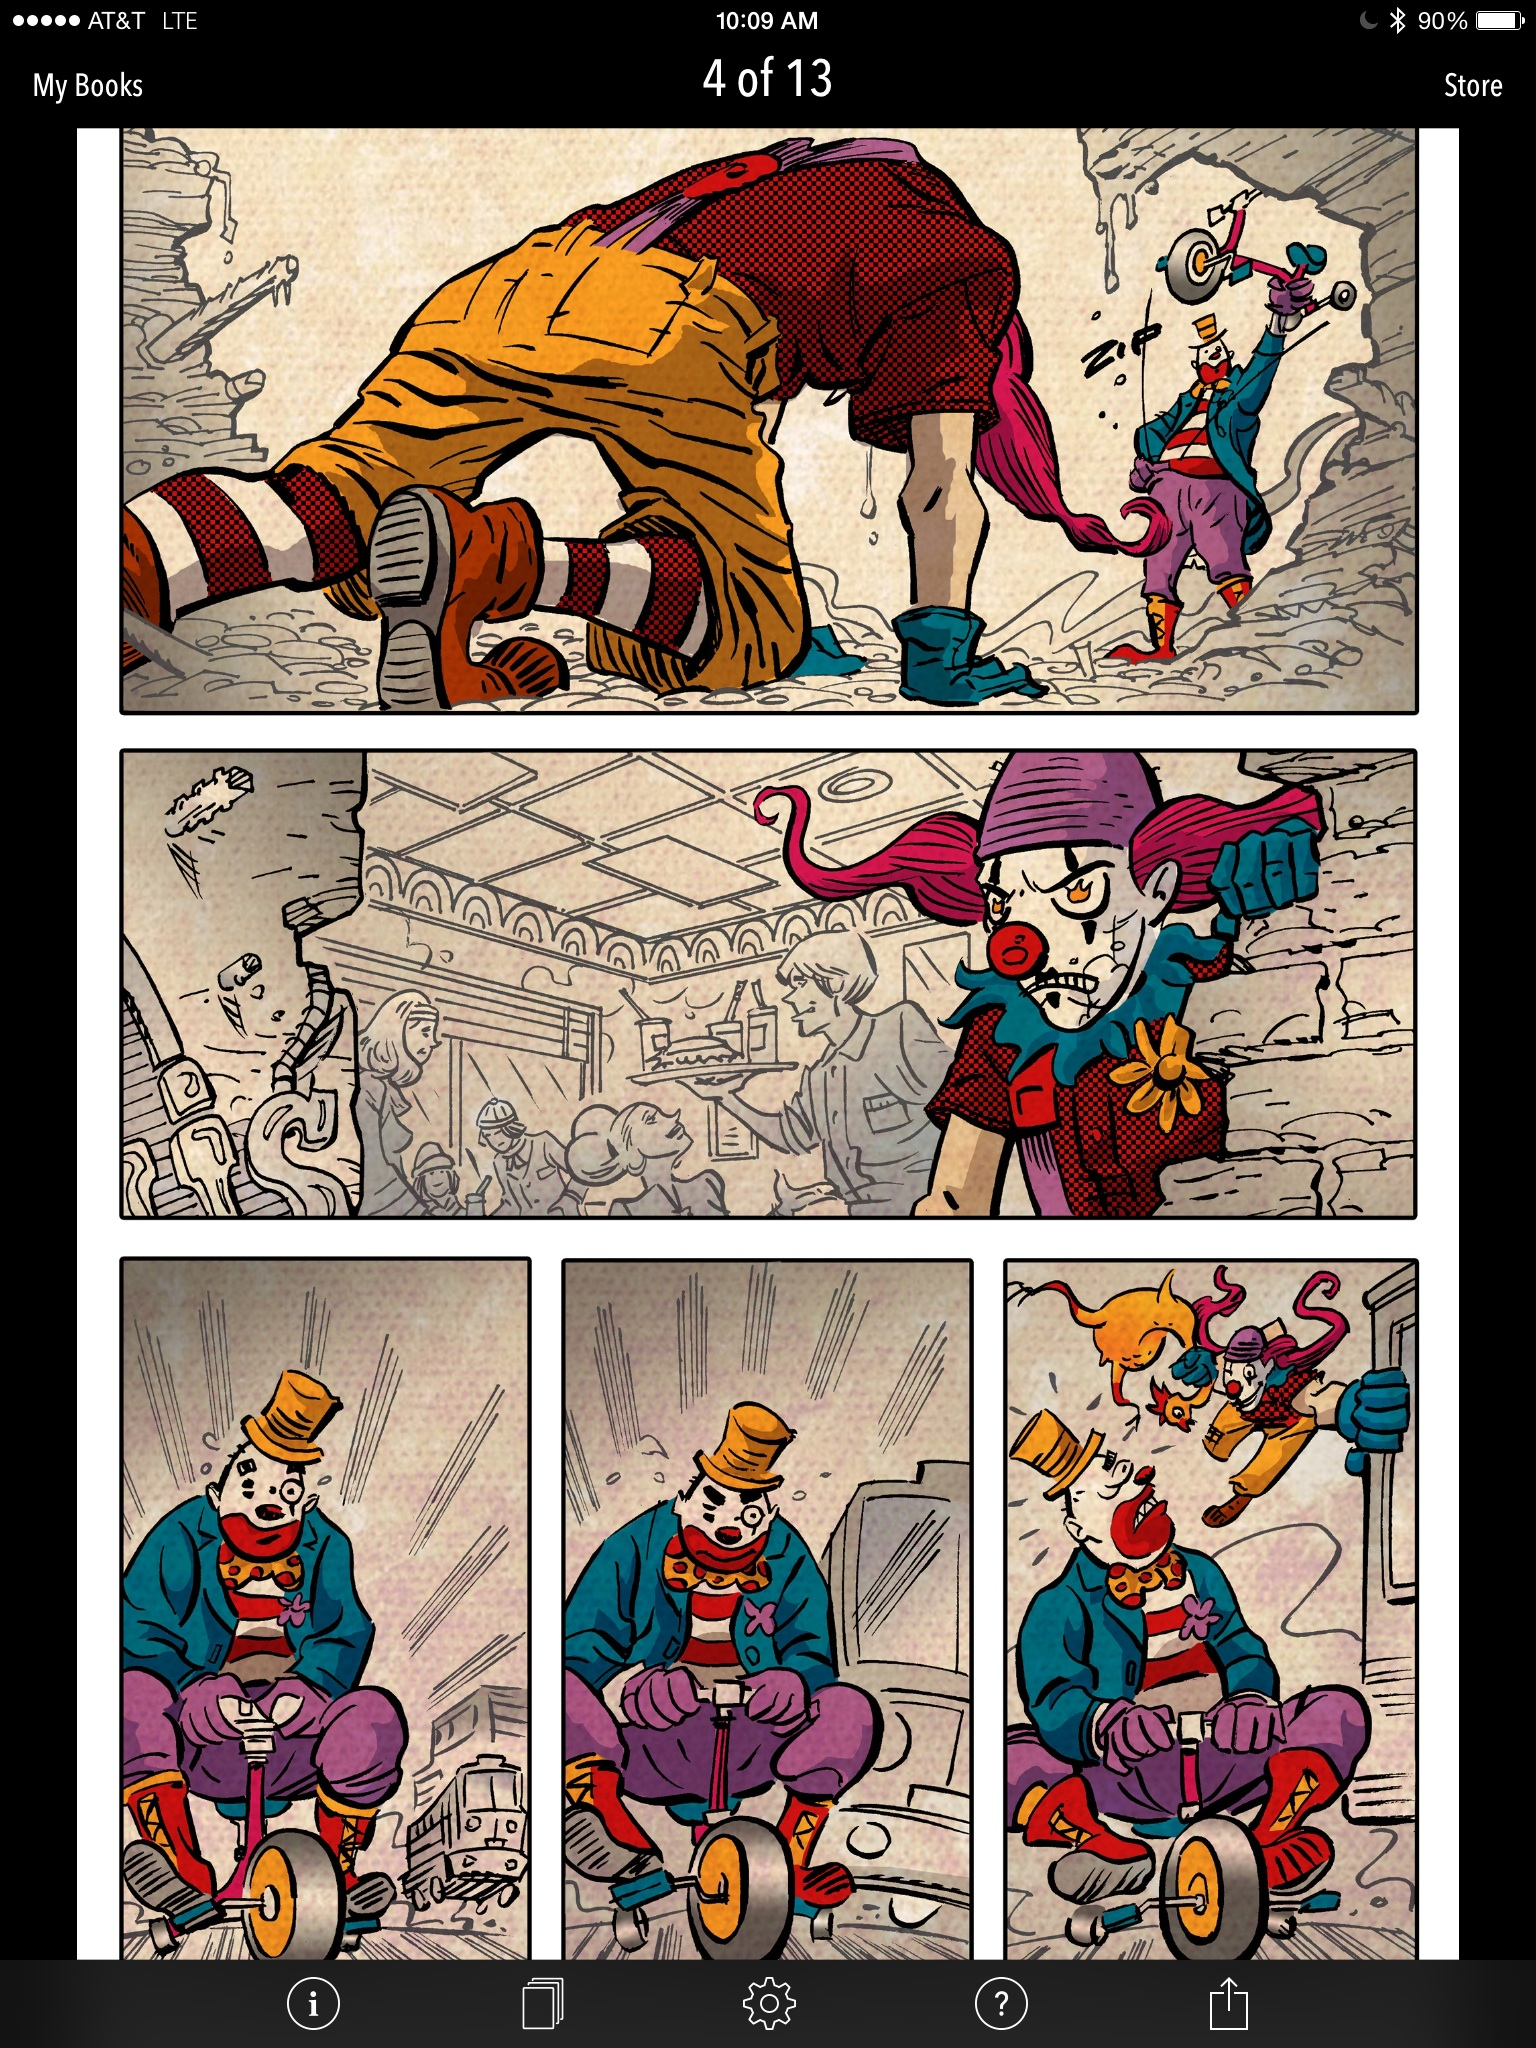 Clown Fight!, a ComiXology Submit comic by Rob Herrington, Ger Curti and Laura Maruca